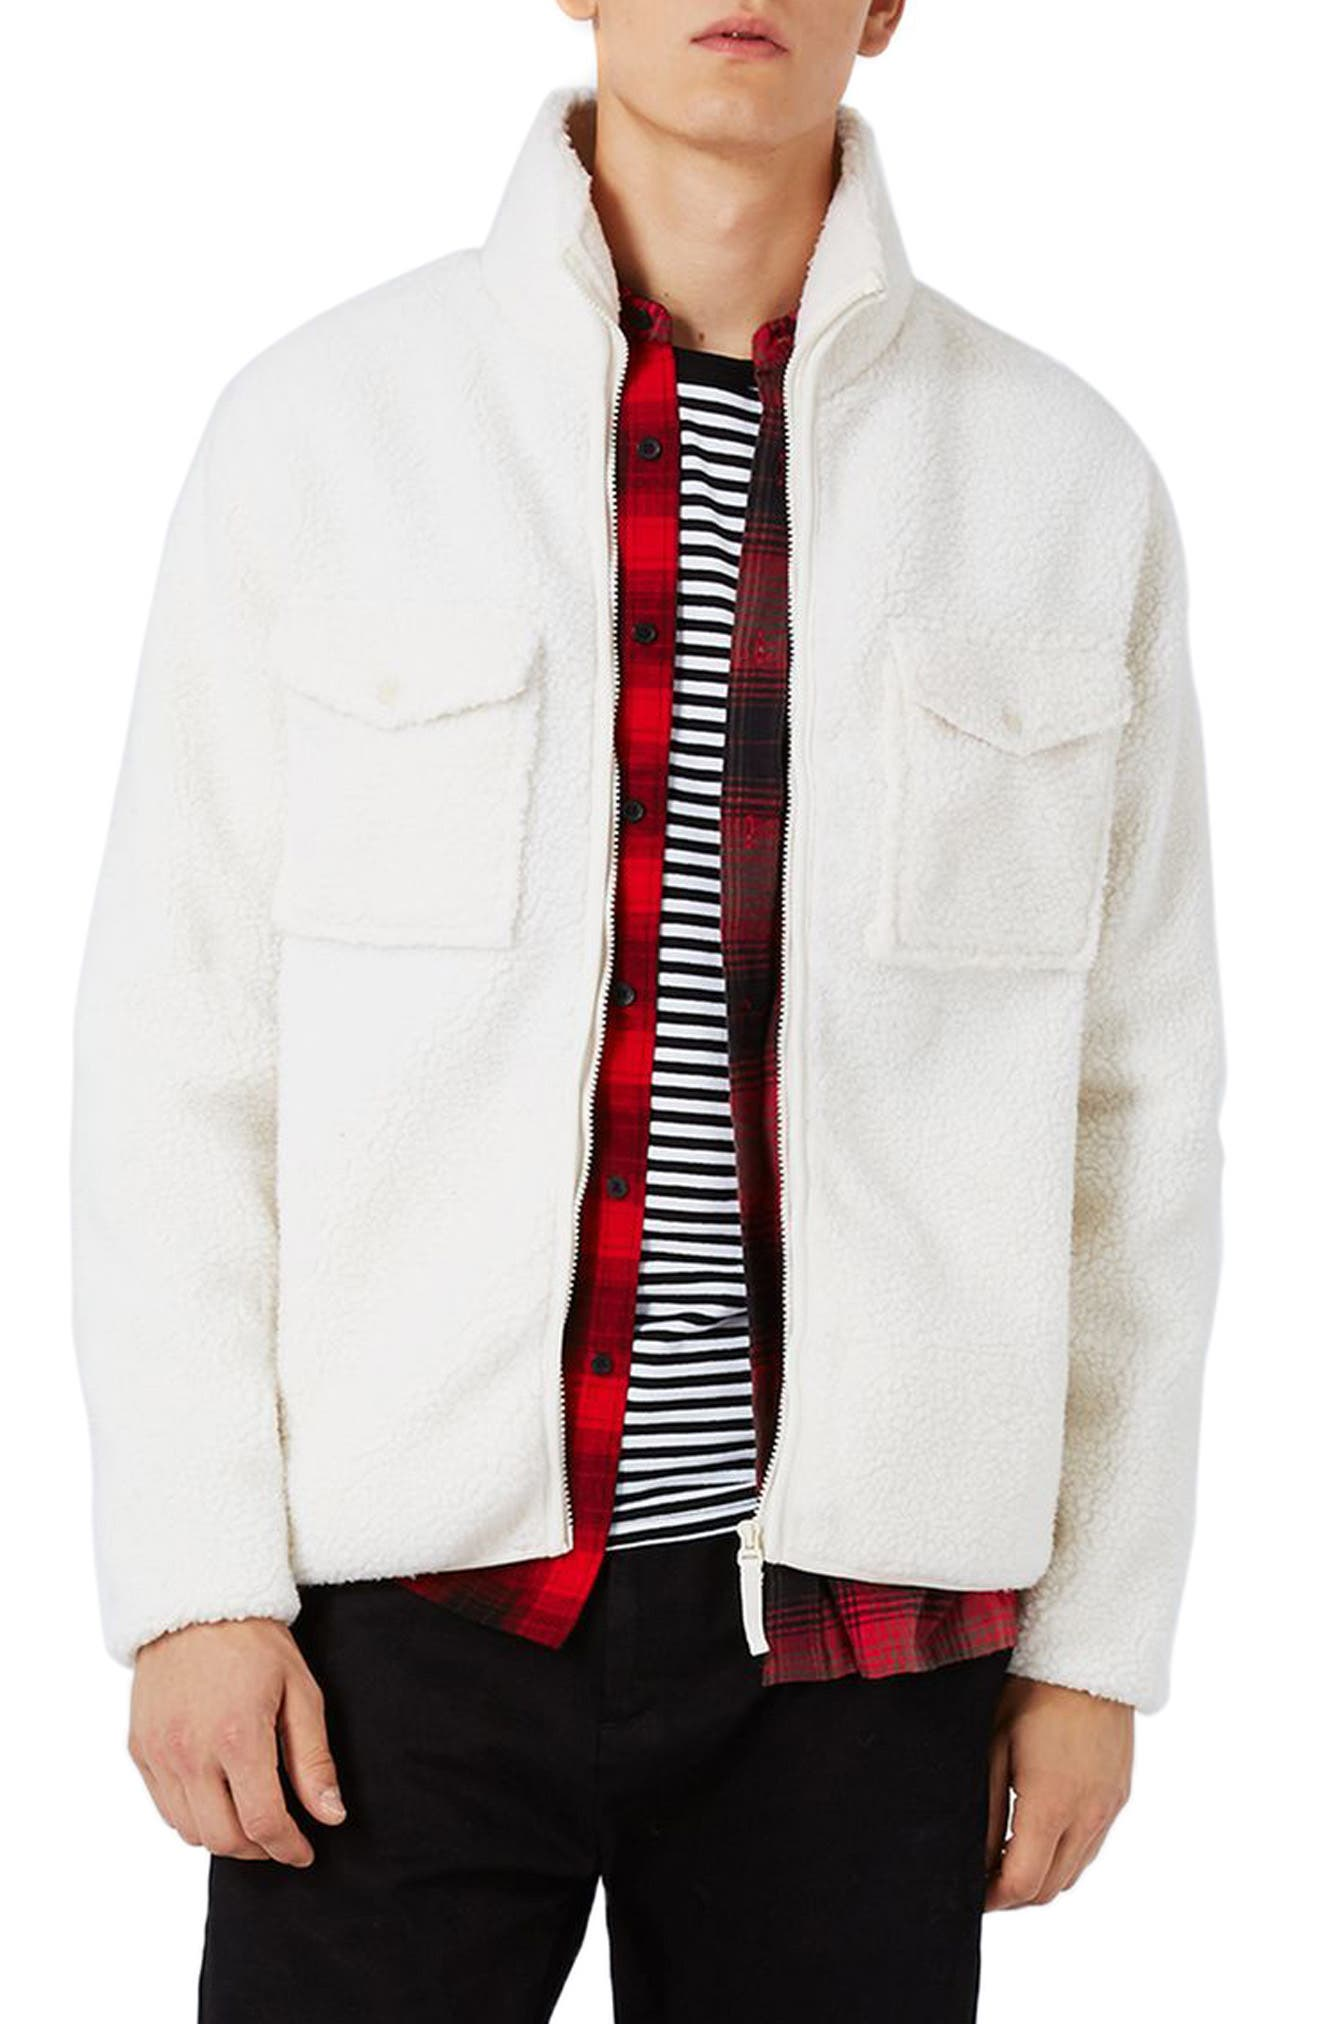 Topman Borg Textured Fleece Jacket